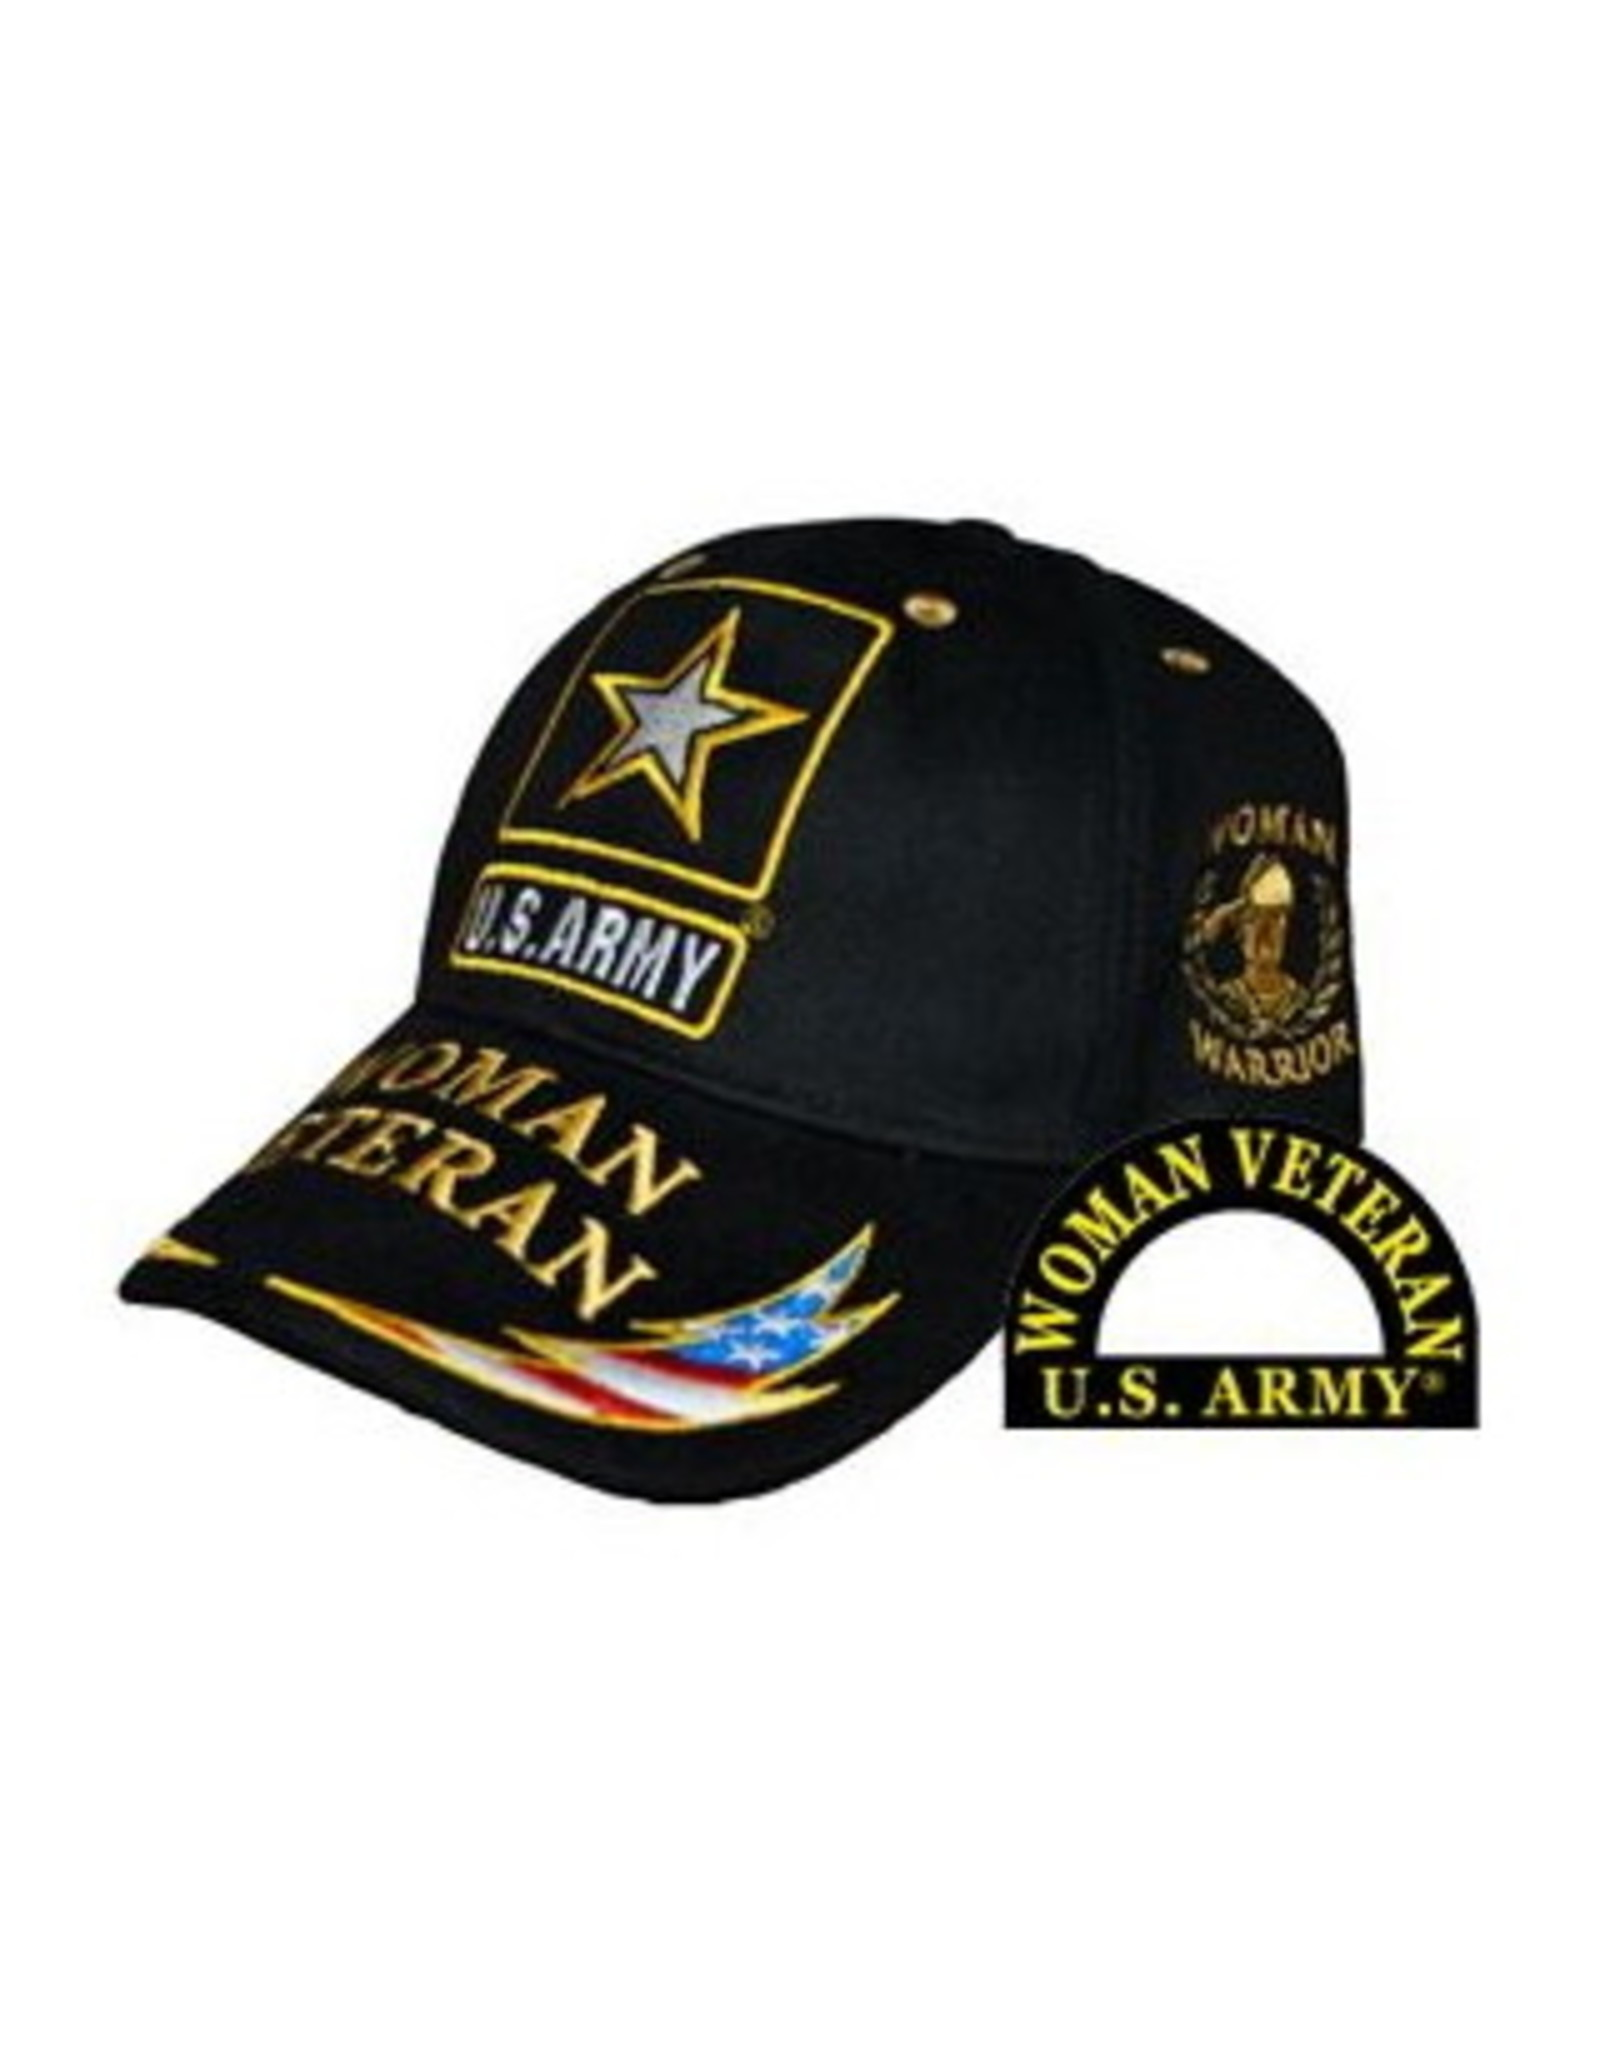 MidMil Army Woman Veteran Hat with Star Emblem and Red White Blue Lightning Bolt on Bill Black